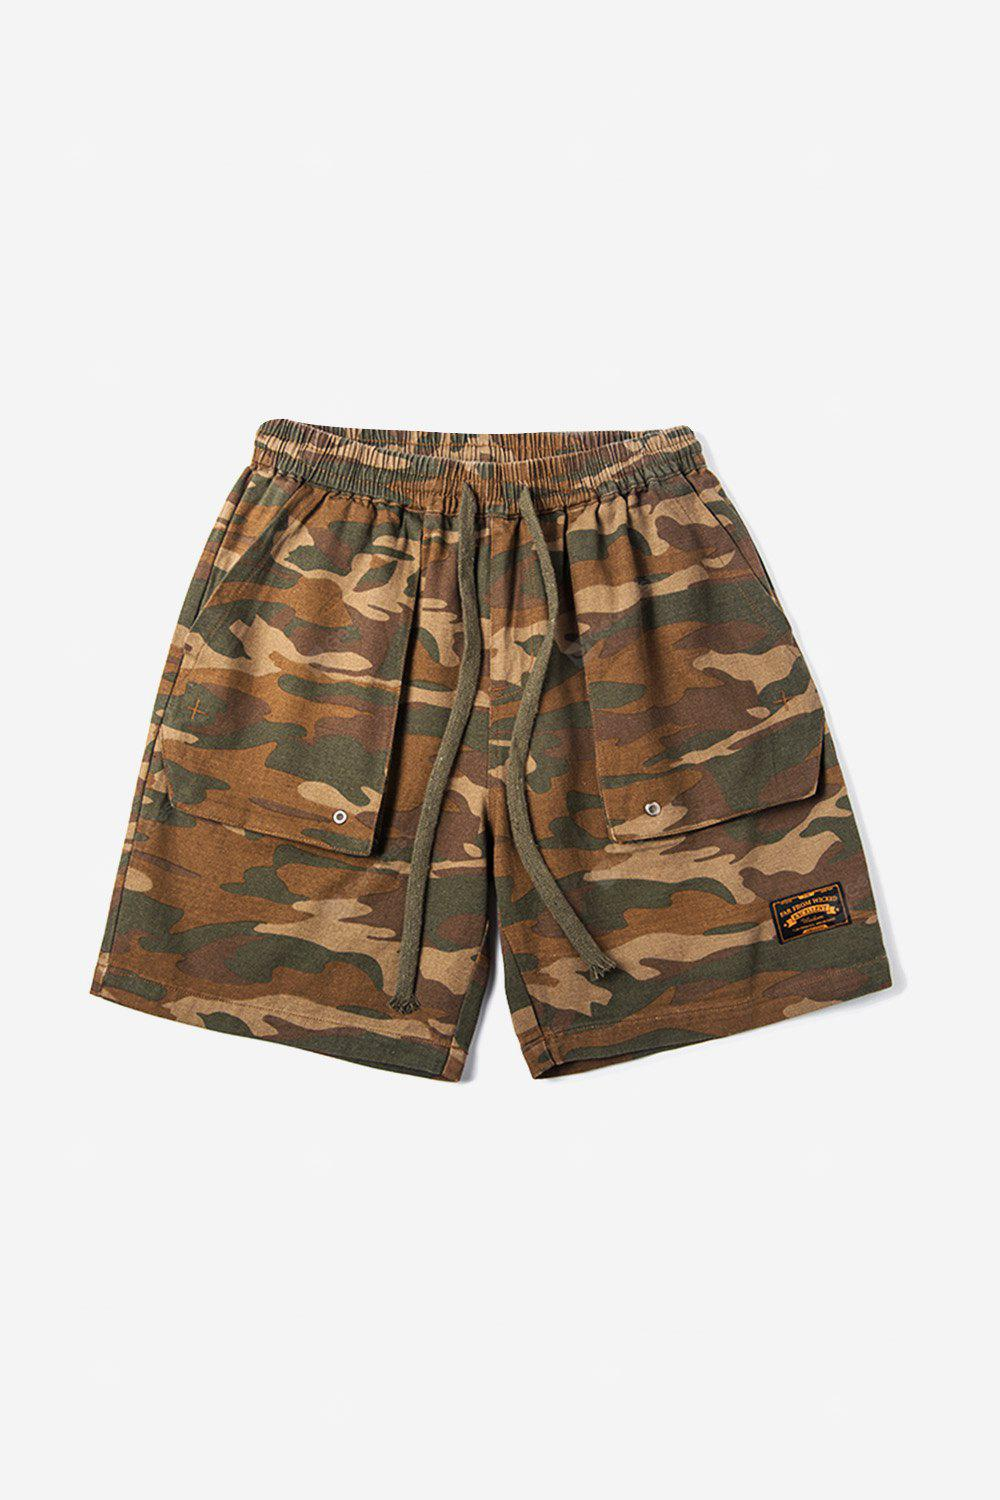 Male Fashionable Casual Twill Camouflage Embroidered Cargo Shorts